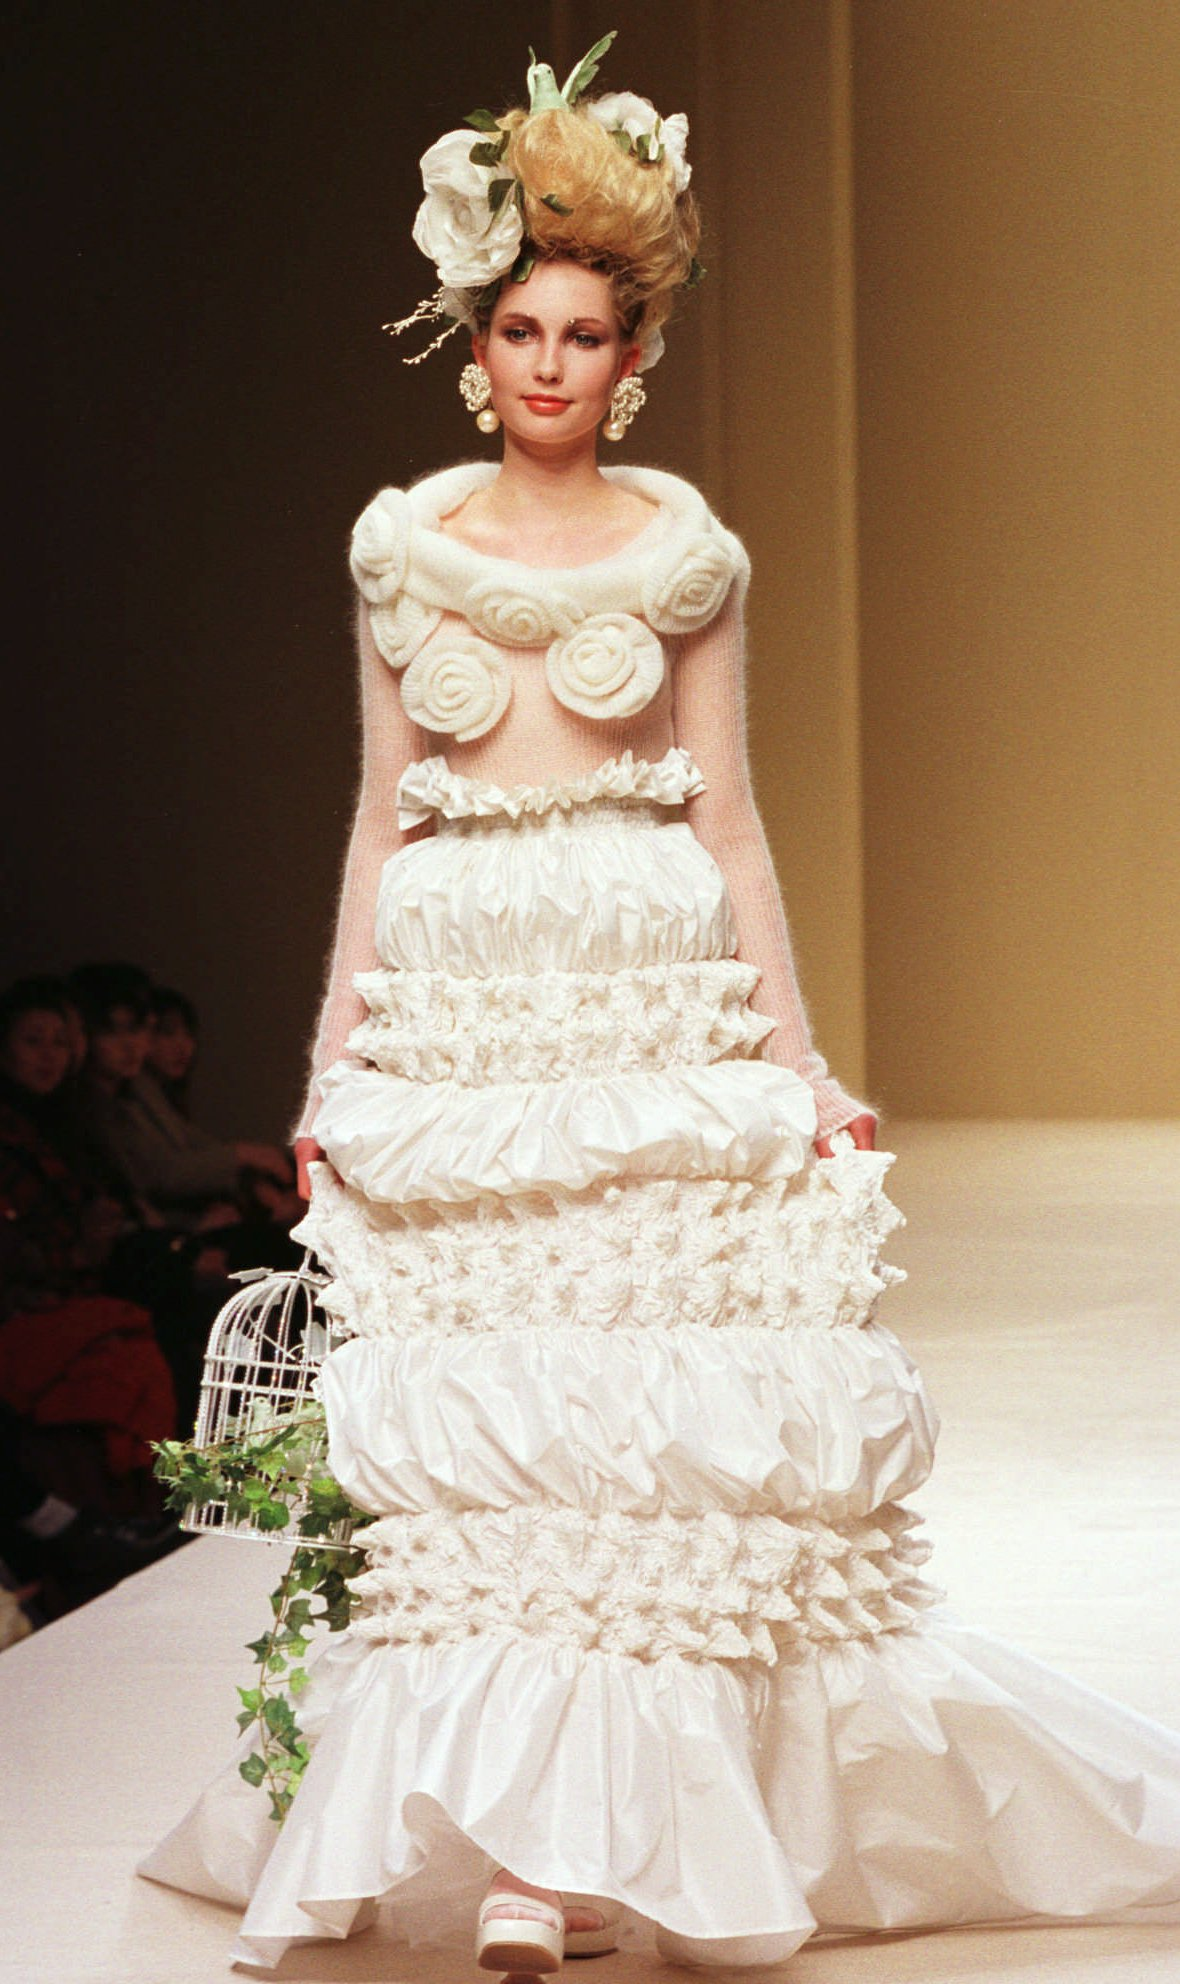 Wedding dresses to avoid at all costs - Houston Chronicle